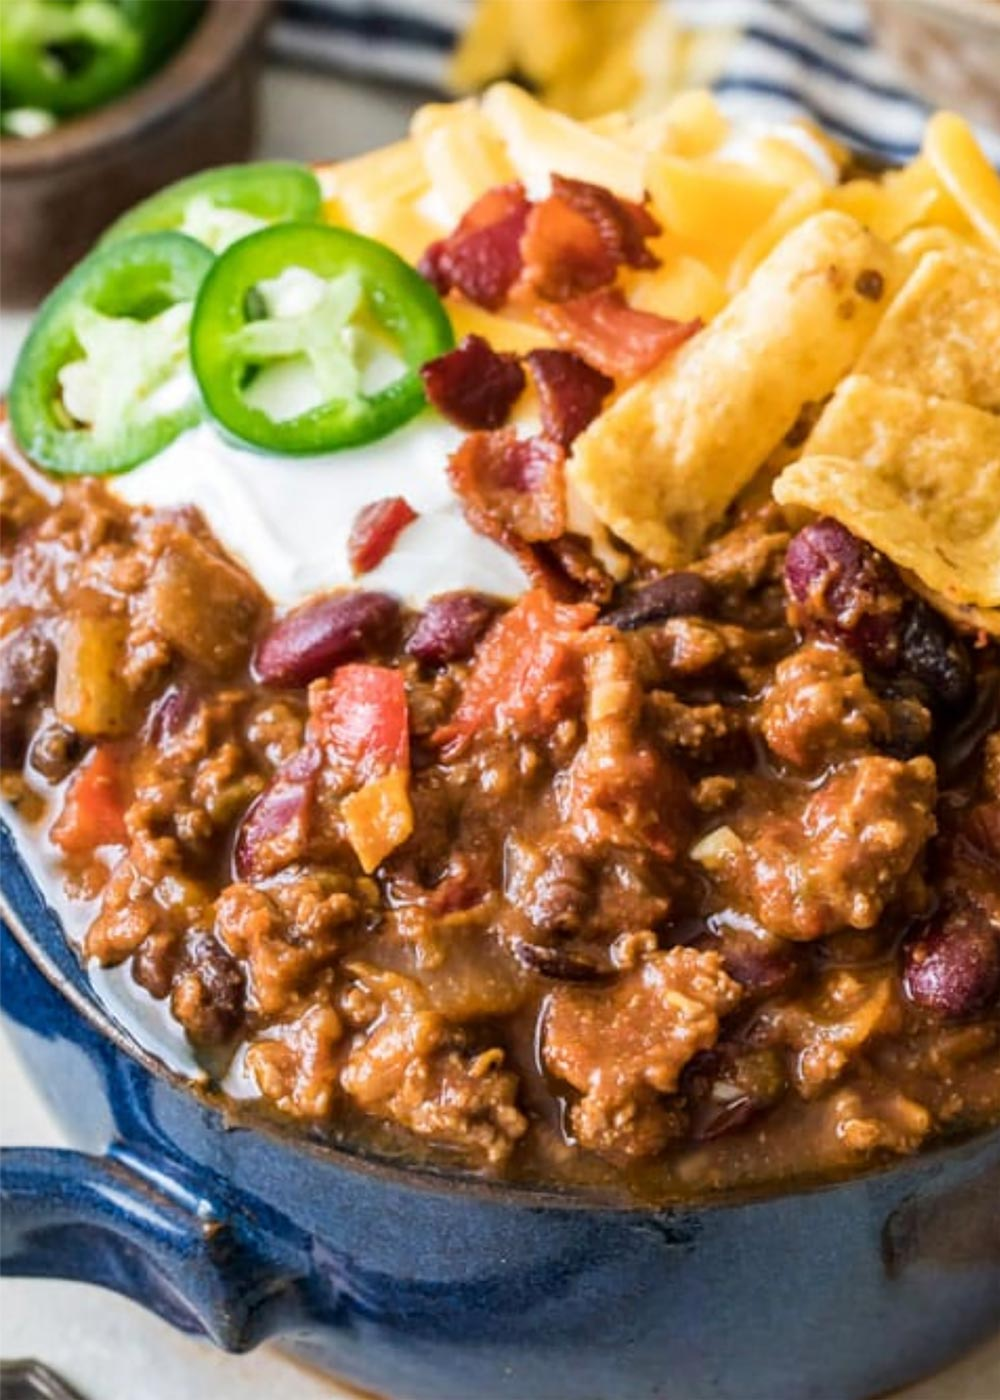 Best Beef Chili - #MakeItGAP Recipe